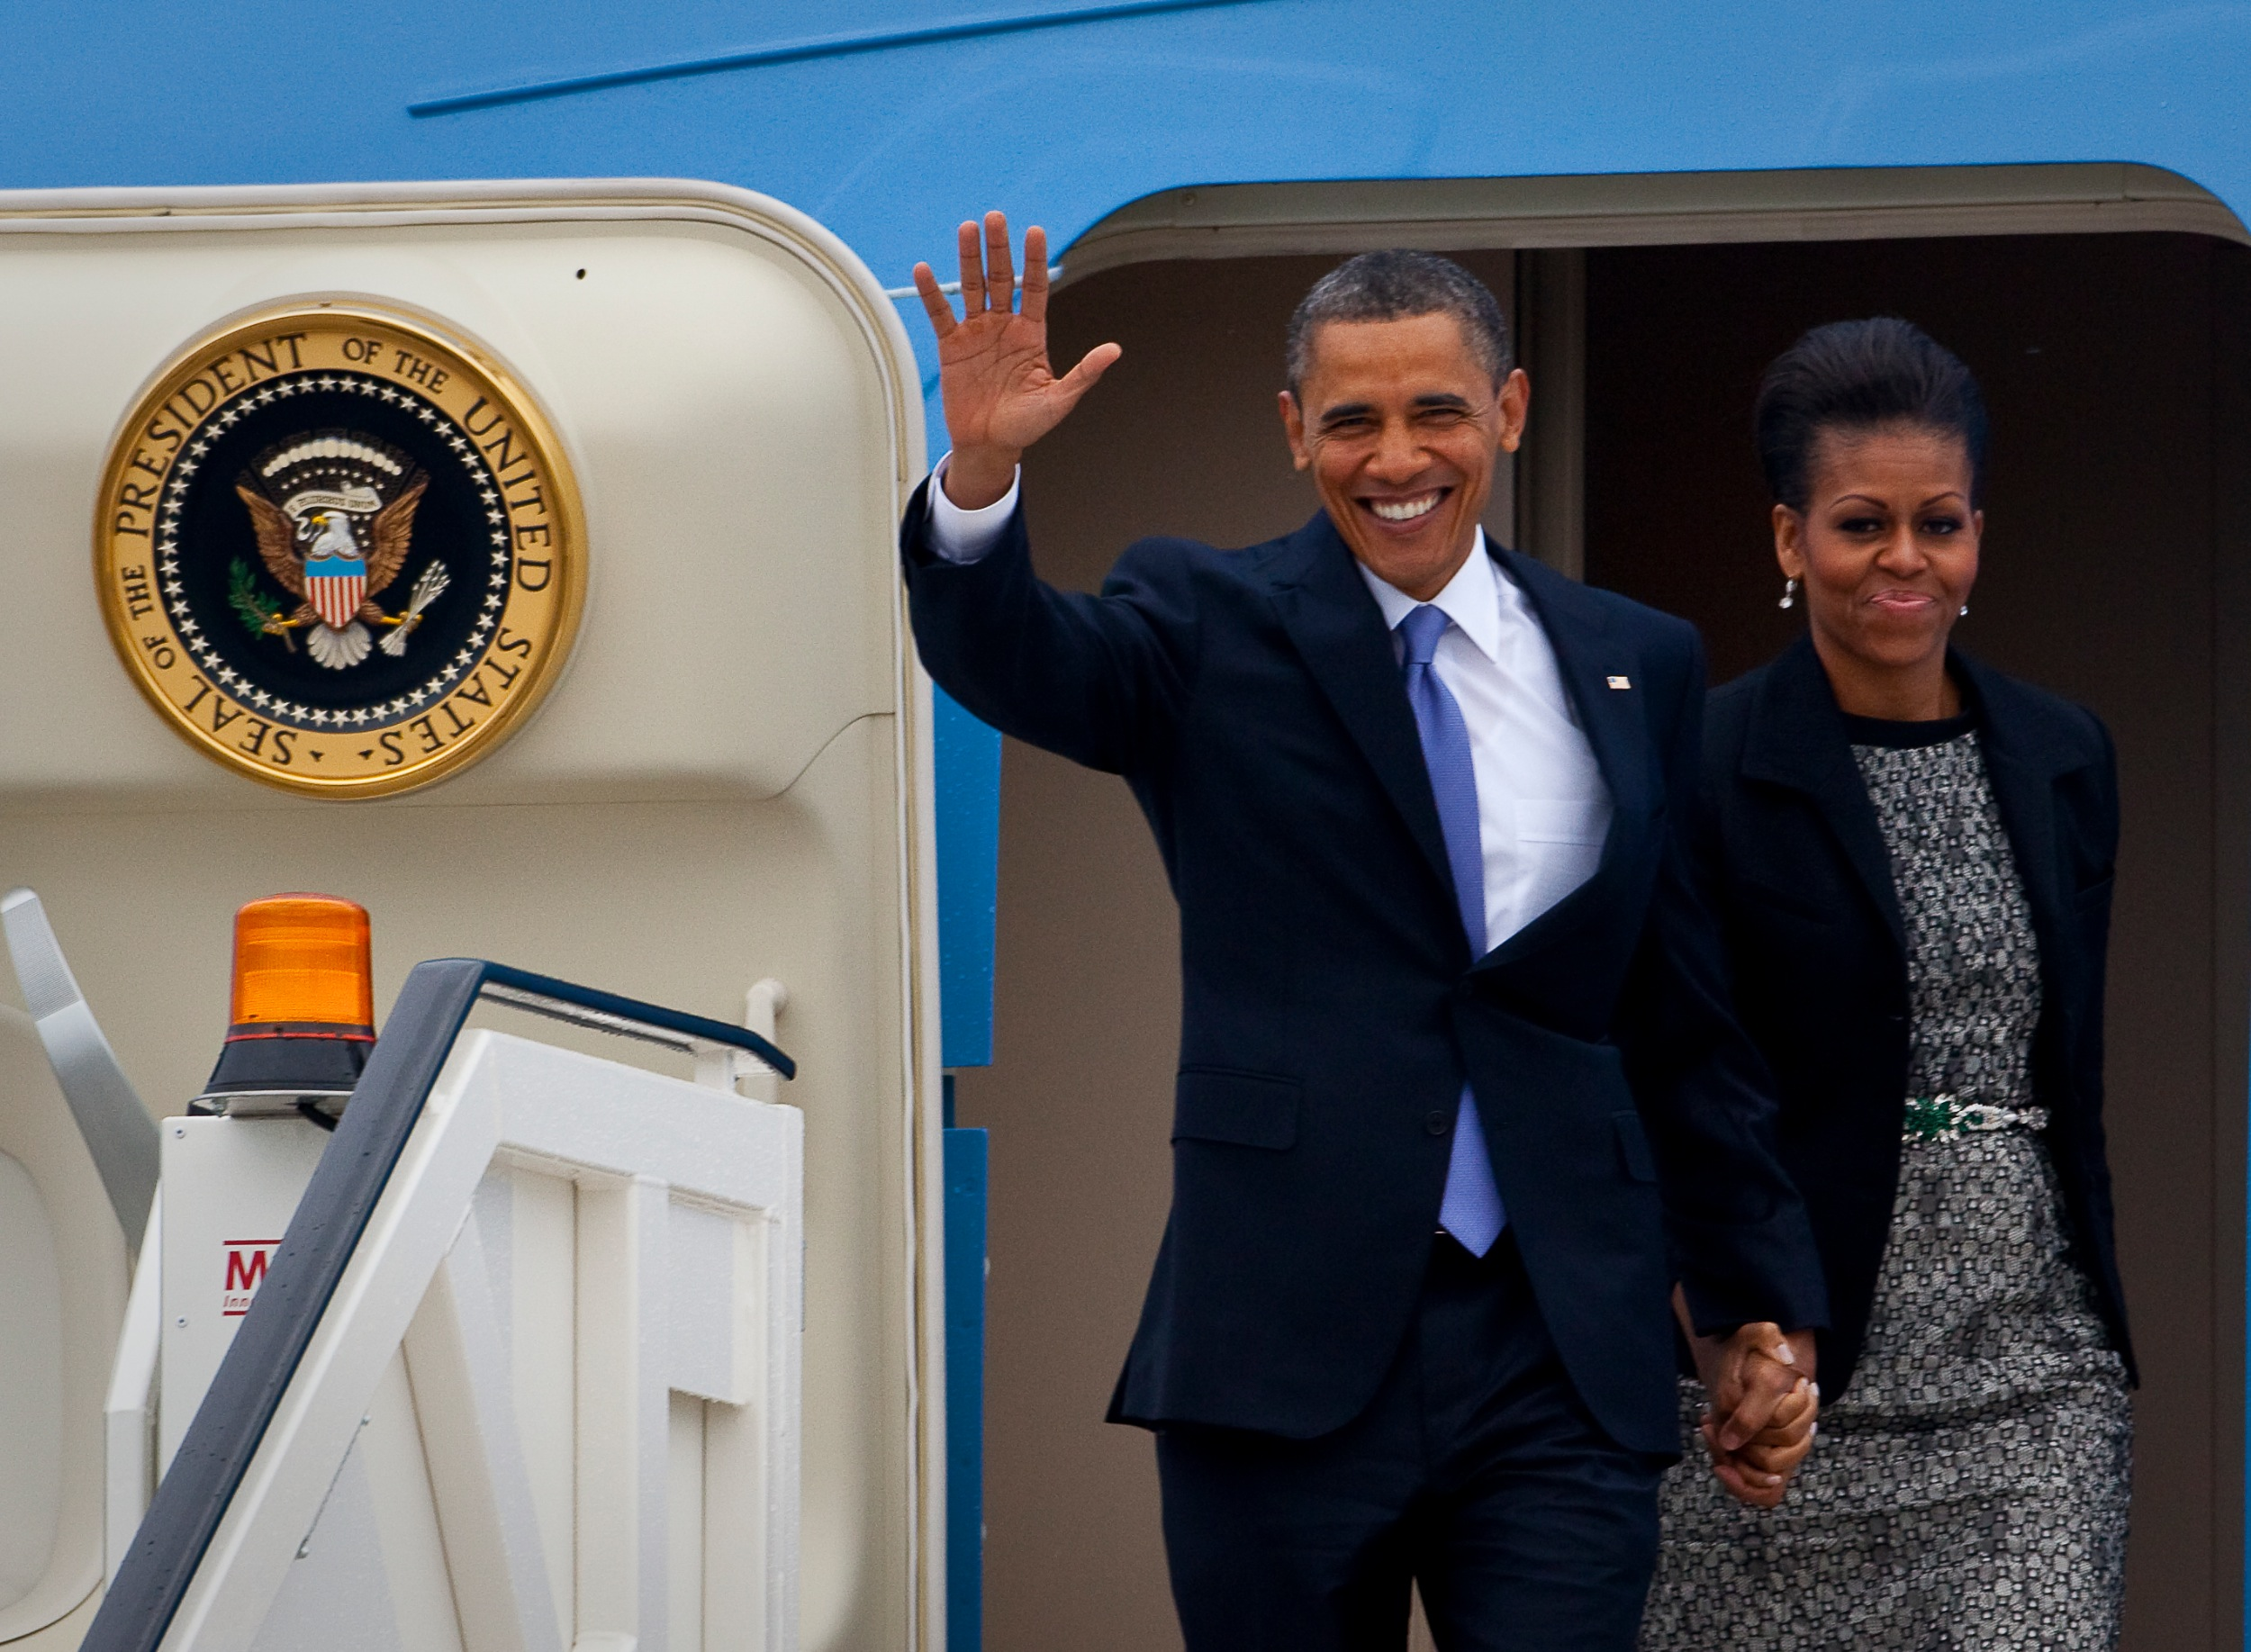 Event Videos of President Obama's VIsit